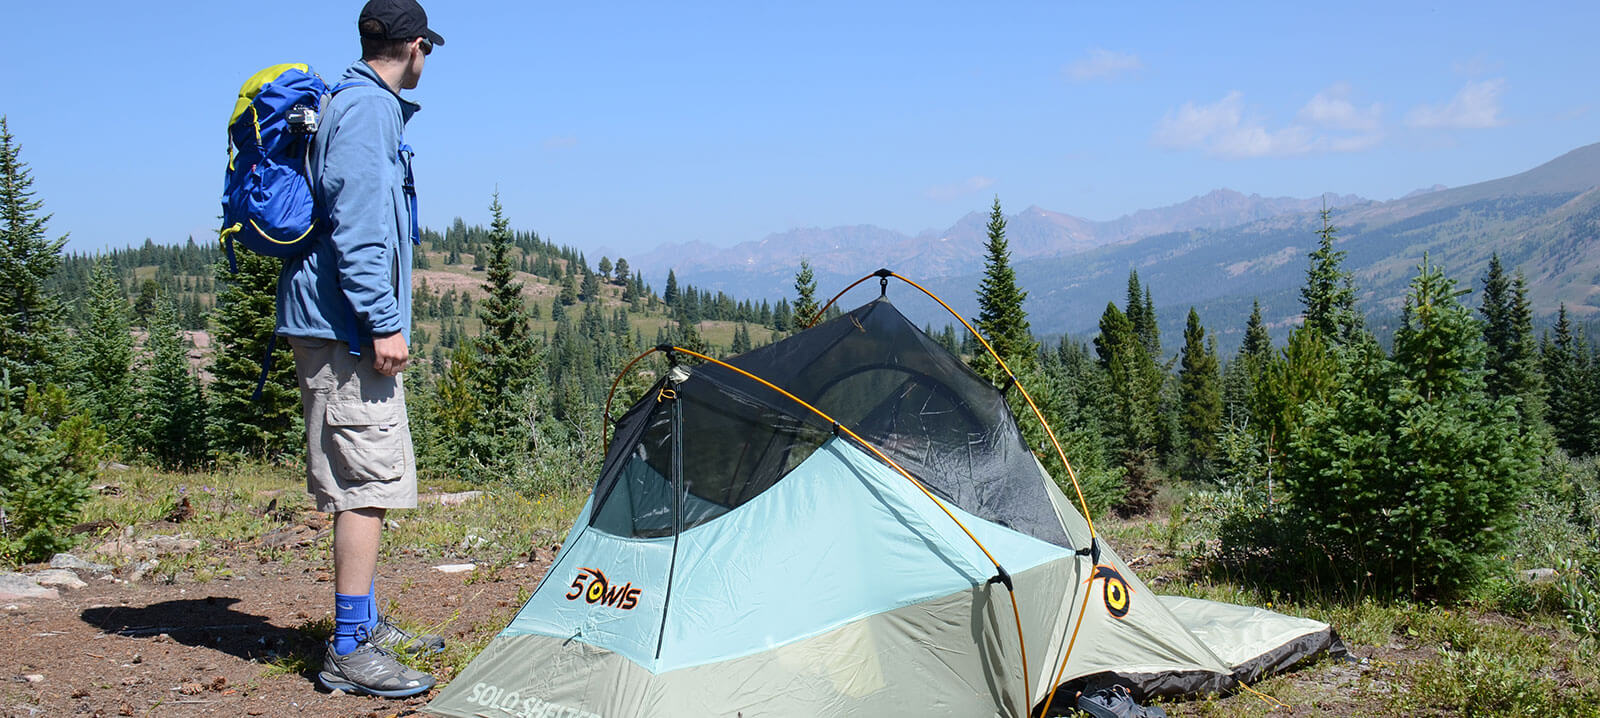 Hiking with 5 Owls Personal Tents